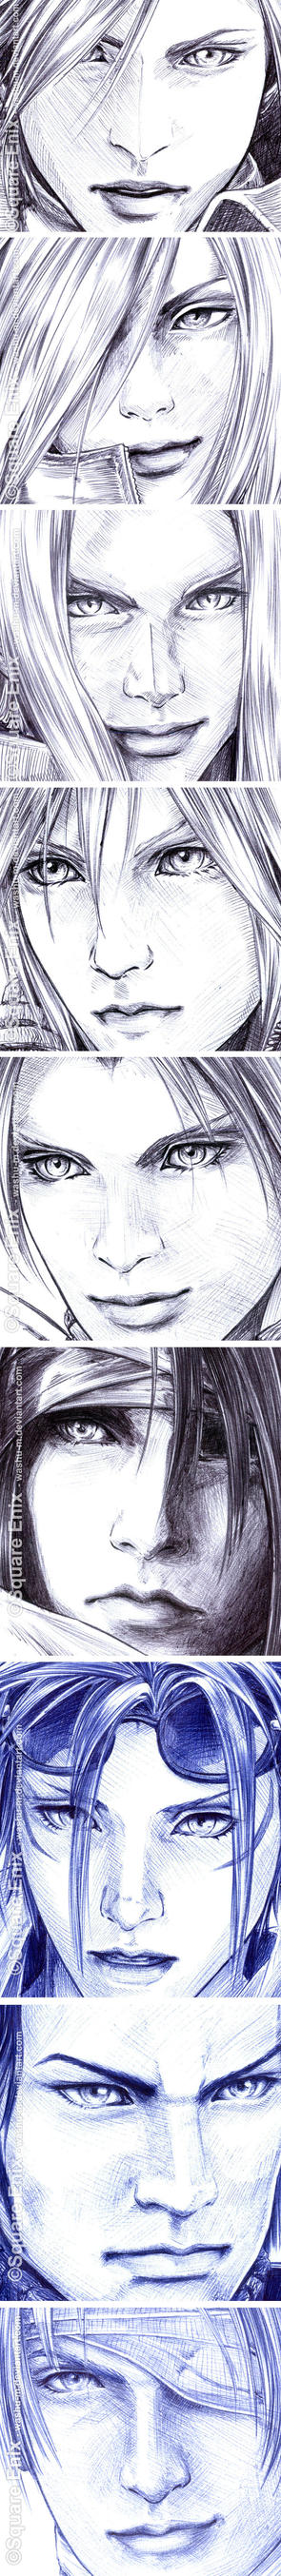 FFVII - Faces Details in Pen by Washu-M